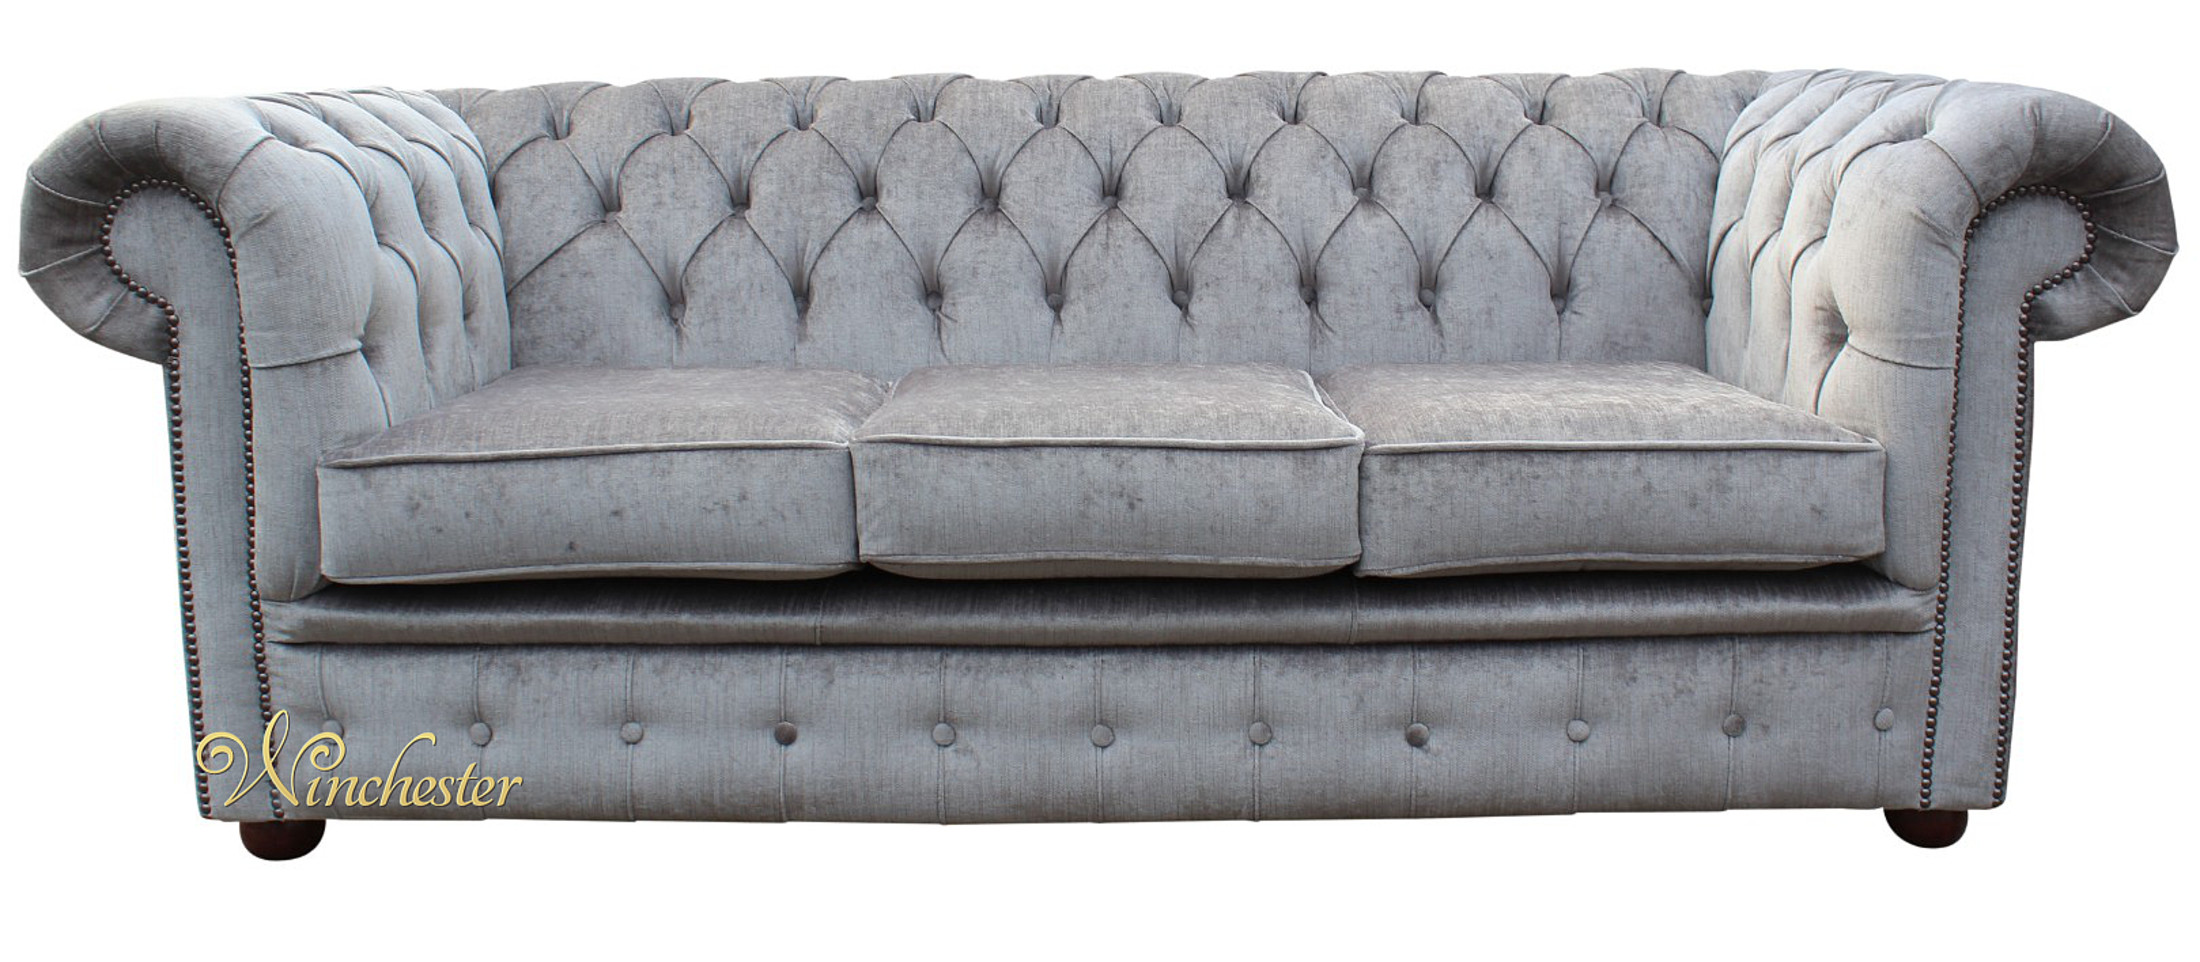 Chesterfield 3 Seater Sofa Settee Perla Illusions Grey Wc